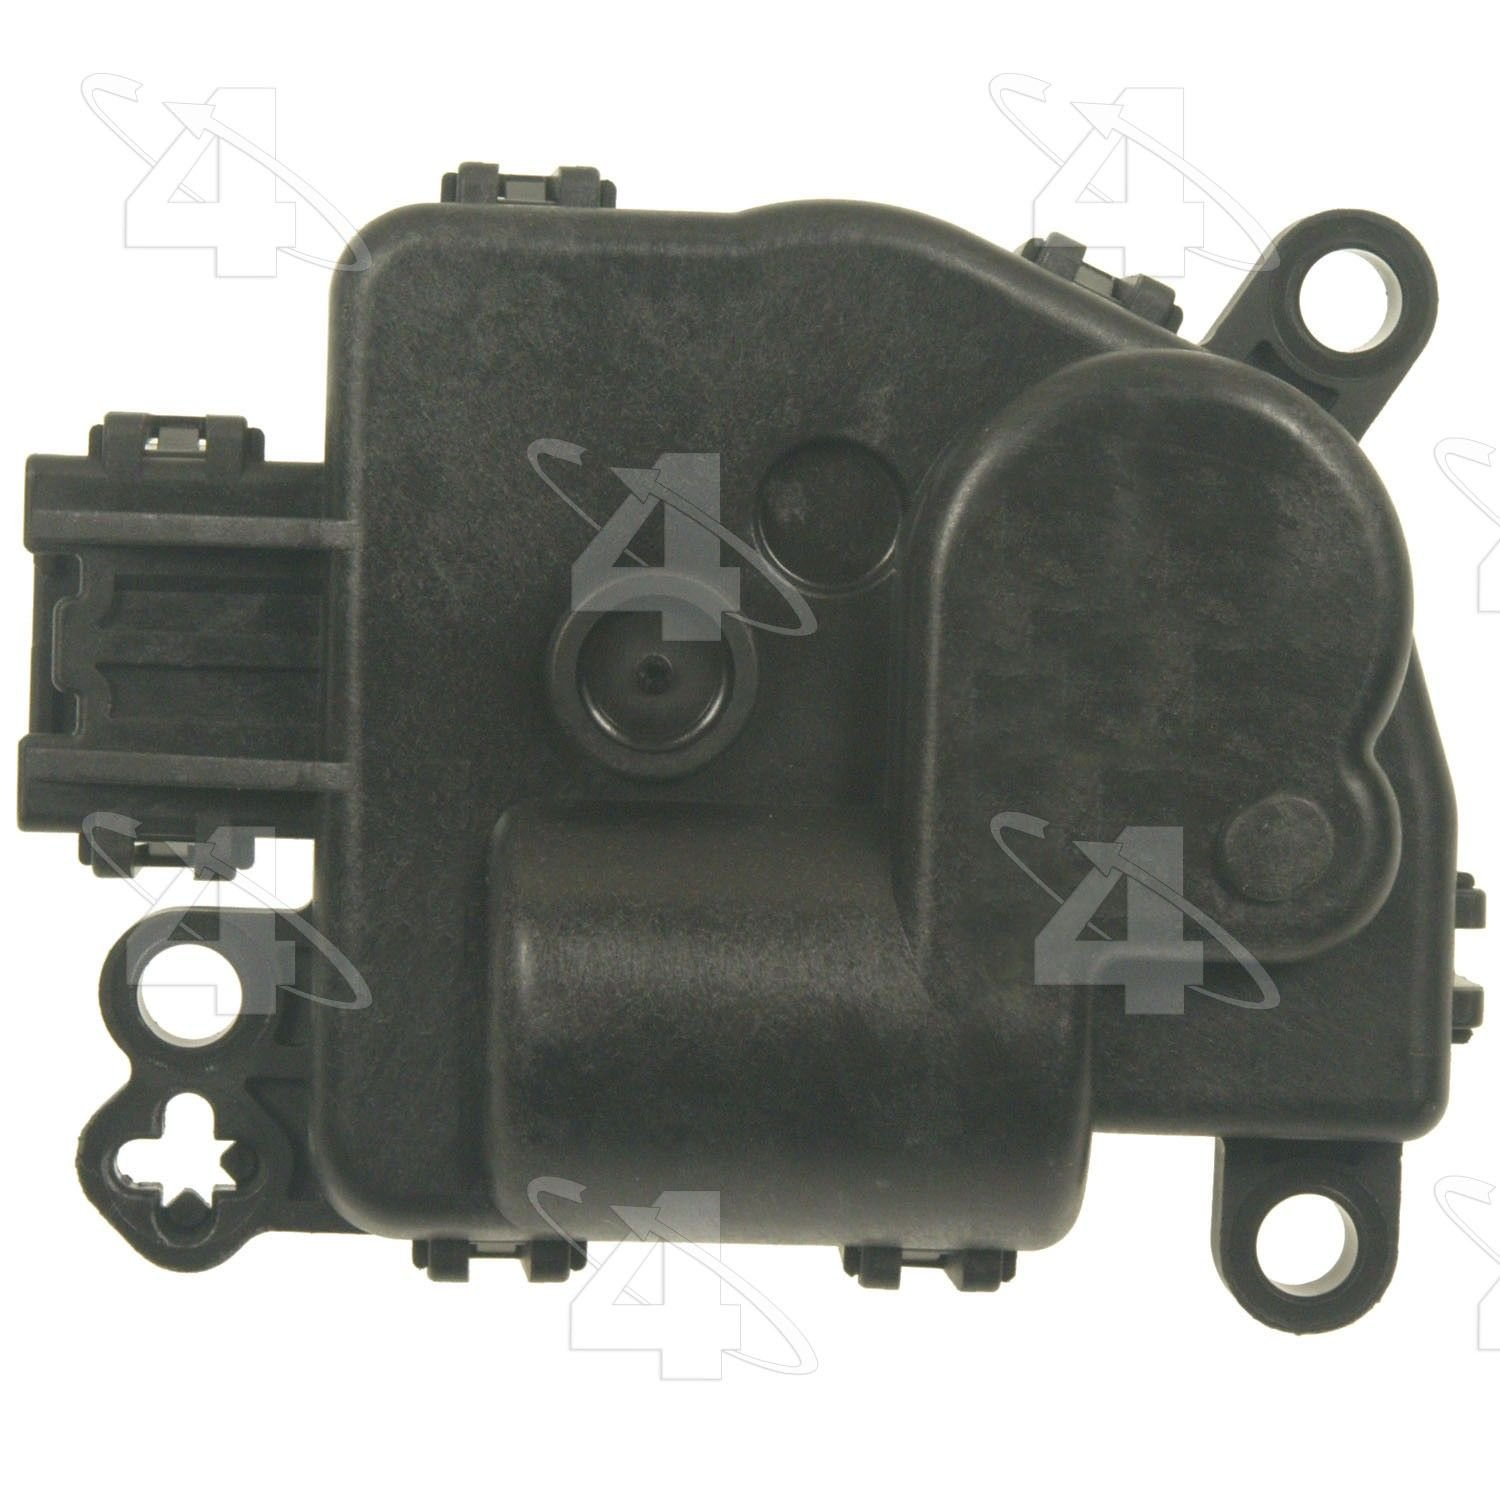 2008 Ford Escape Hvac Heater Blend Door Actuator Left Main 4 Cyl 2 3l Four Seasons 73045 With Dual Zone Climate Control